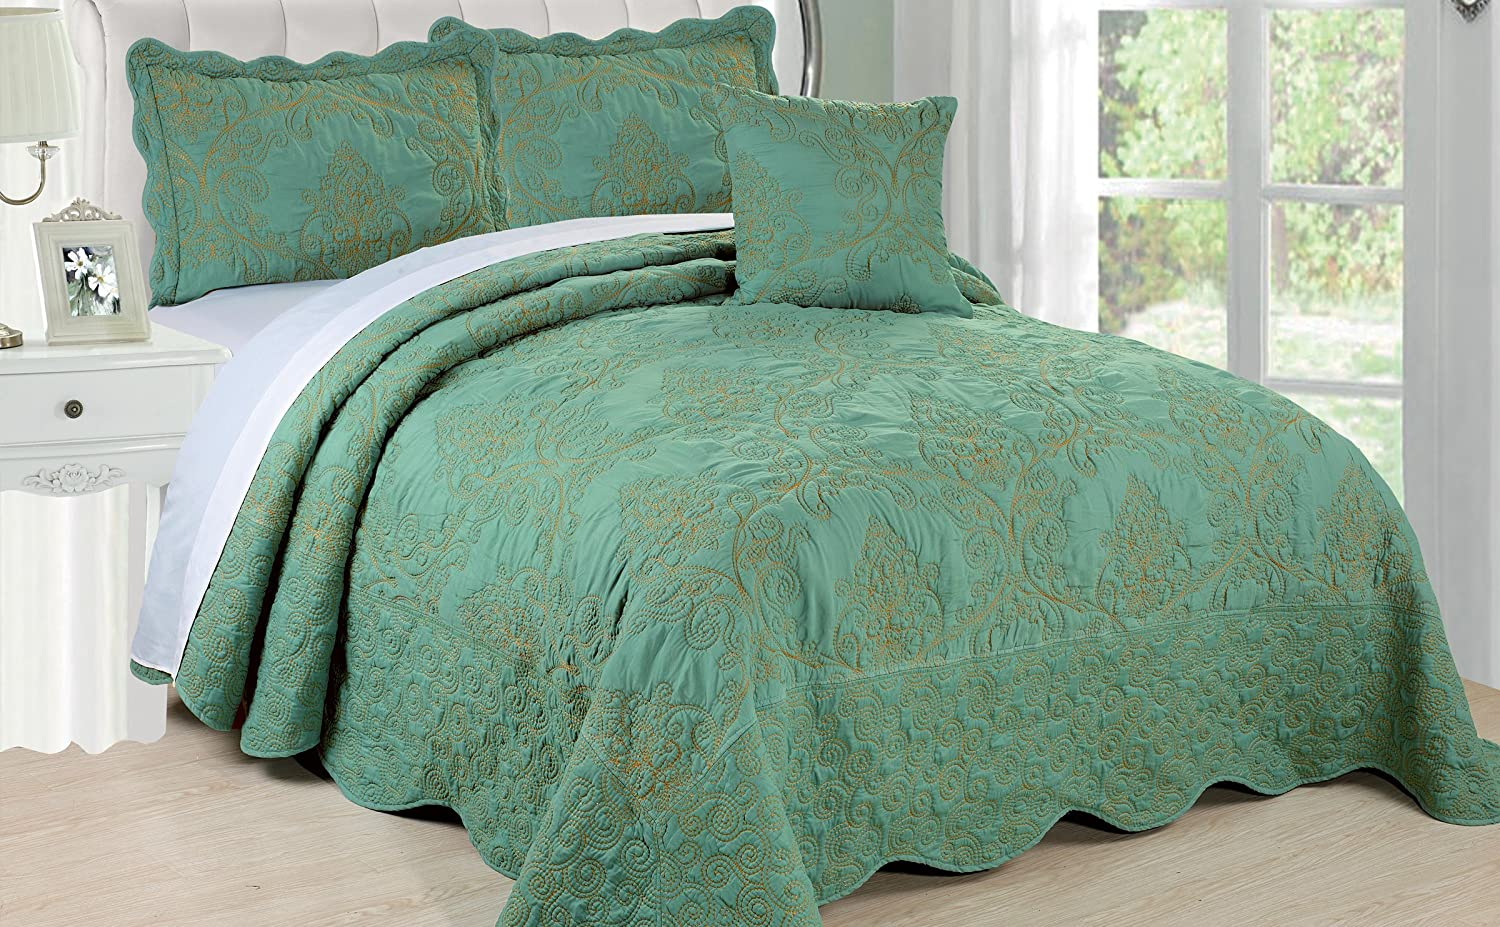 Serenta Damask 4 Piece Bedspread Set, Queen, Teal by Home Soft Things B0131P5VAY クイーン|ティール ティール クイーン